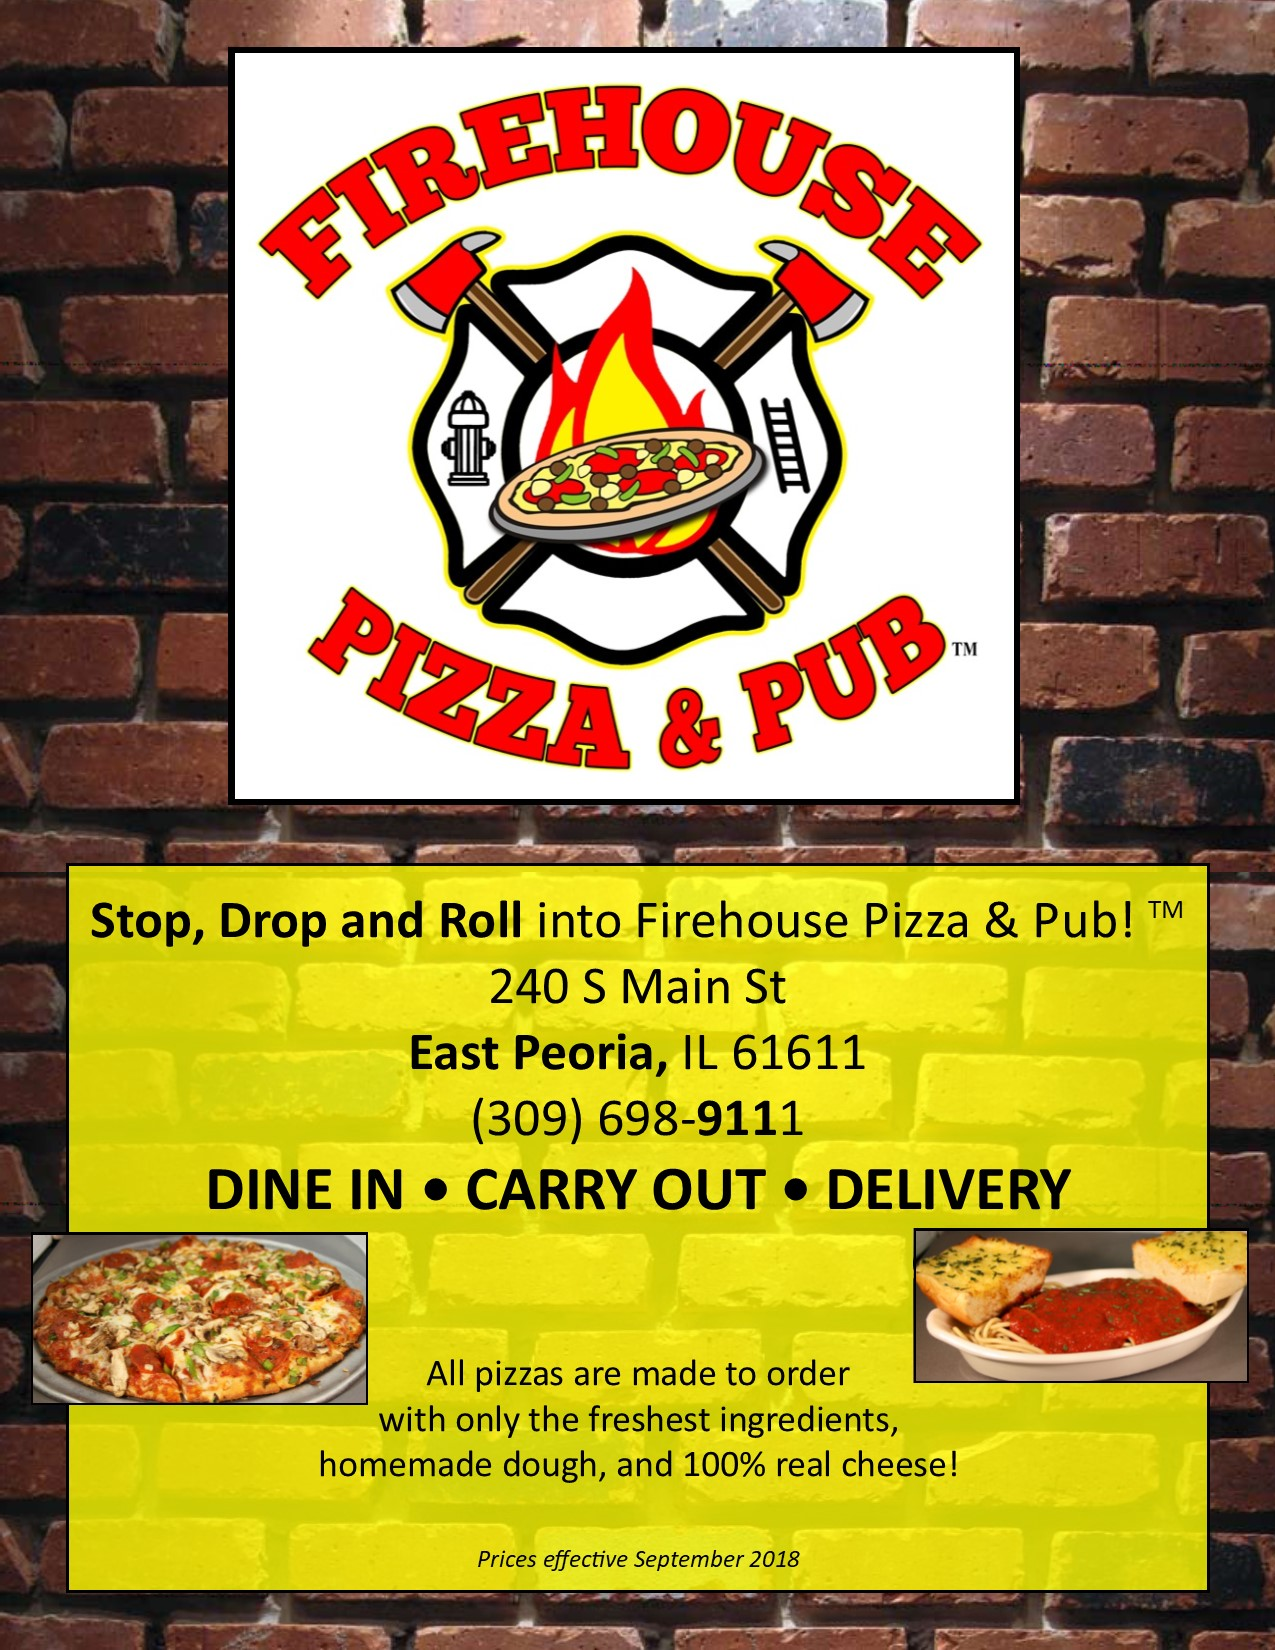 picture about Firehouse Subs Printable Menu titled Our Menu Transport, Deliver Out or Dine Inside of.